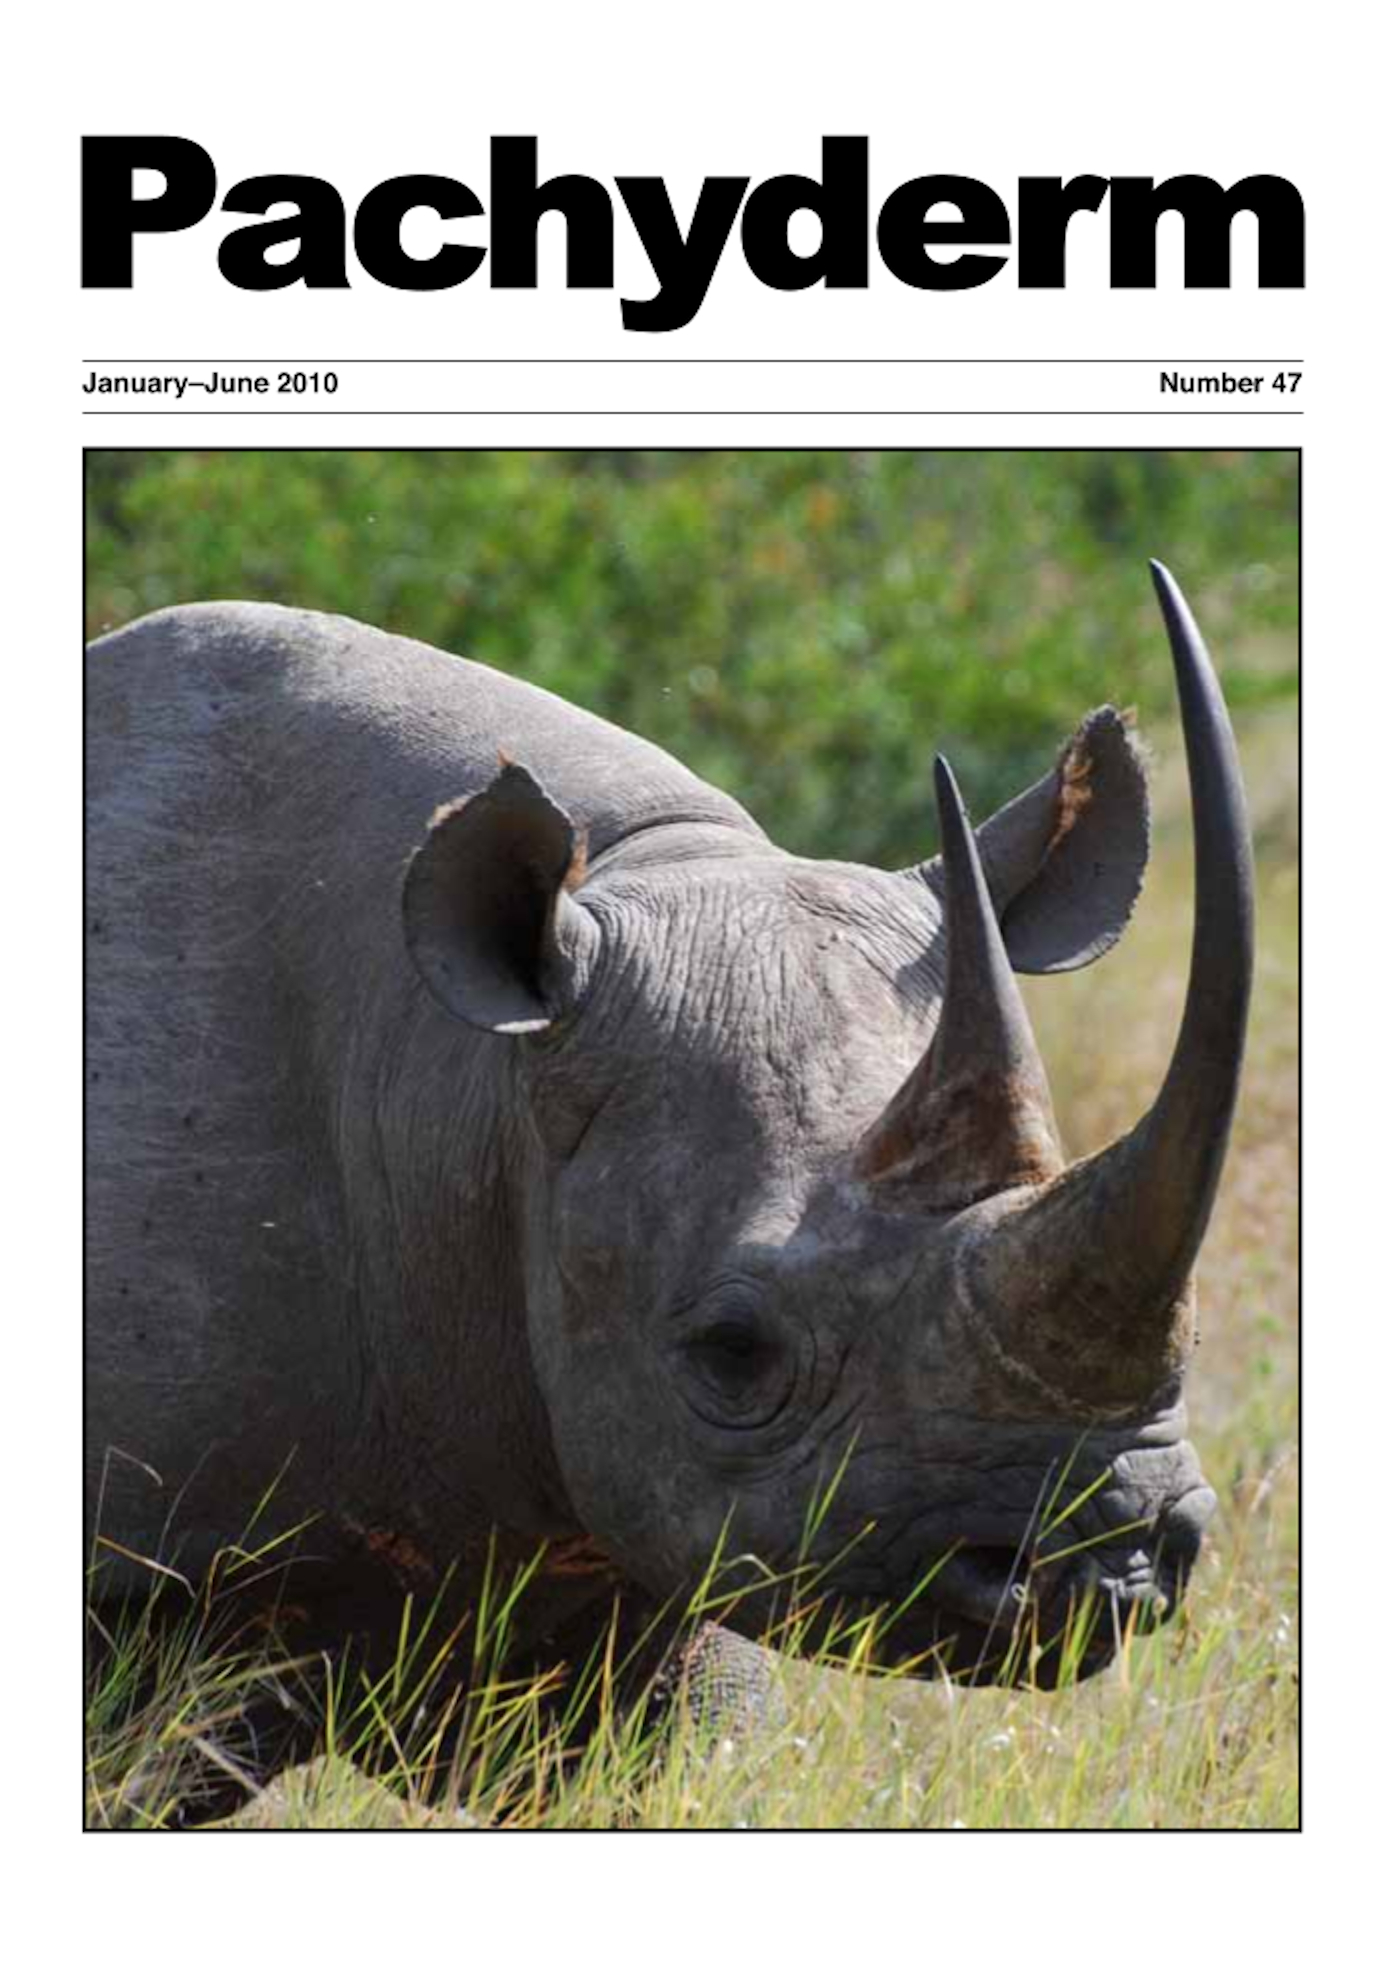 Cover: Eastern black rhino (Diceros bicornis ss. michaeli) at Ol Pejeta Conservancy, Kenya. Photo: Brendan Hill